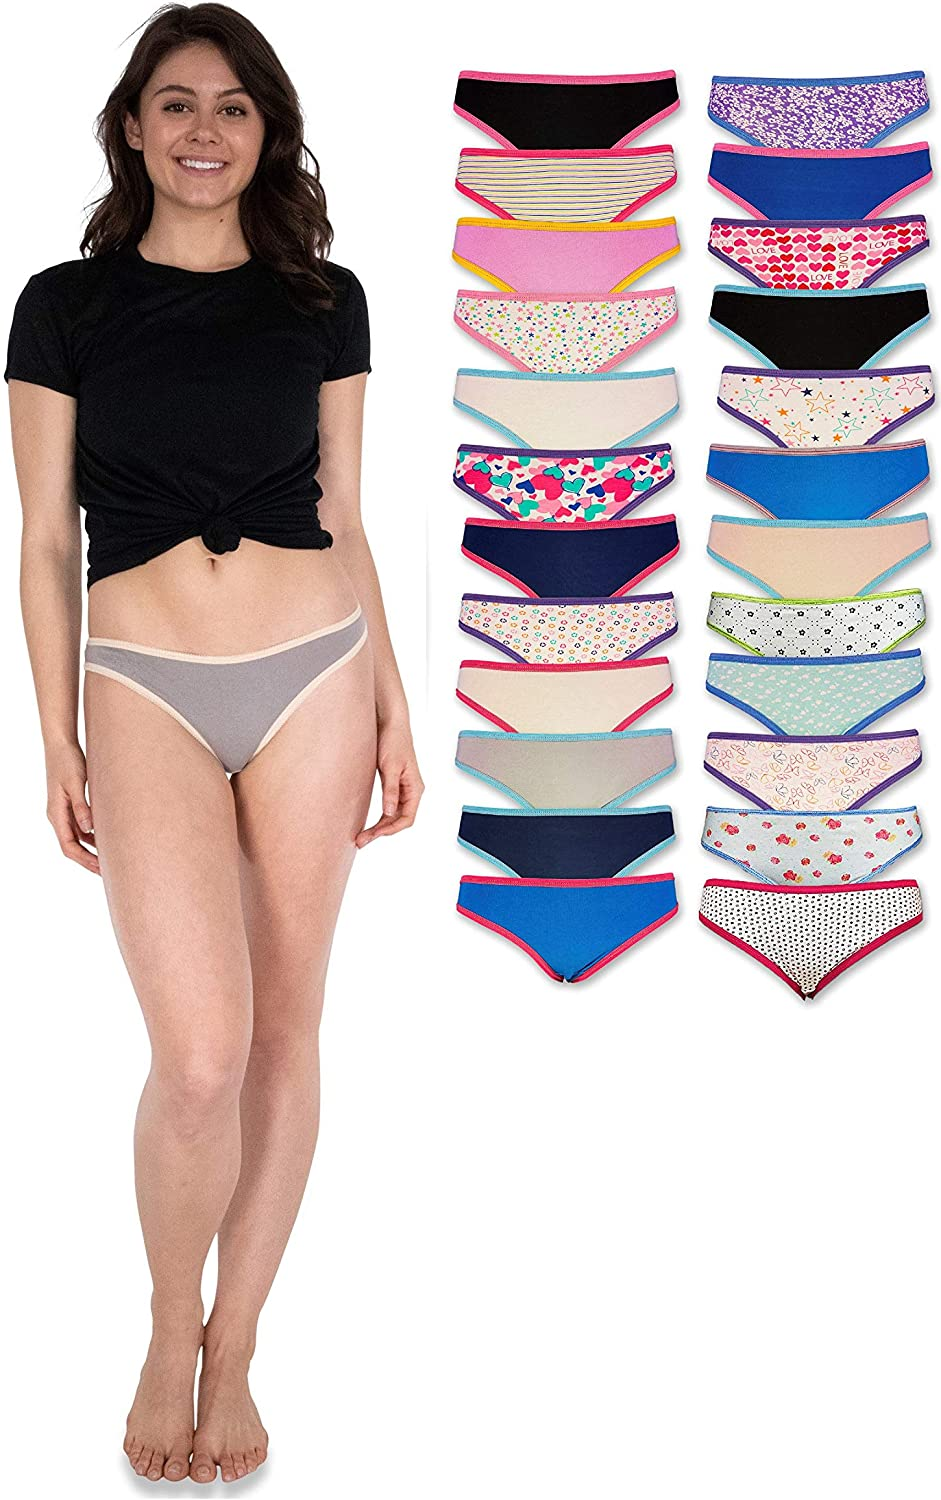 Livingtex 24 Pack Variety of Womens Underwear Pack T-Back Thong Bikini Hipster Briefs Cotton Lace Panties